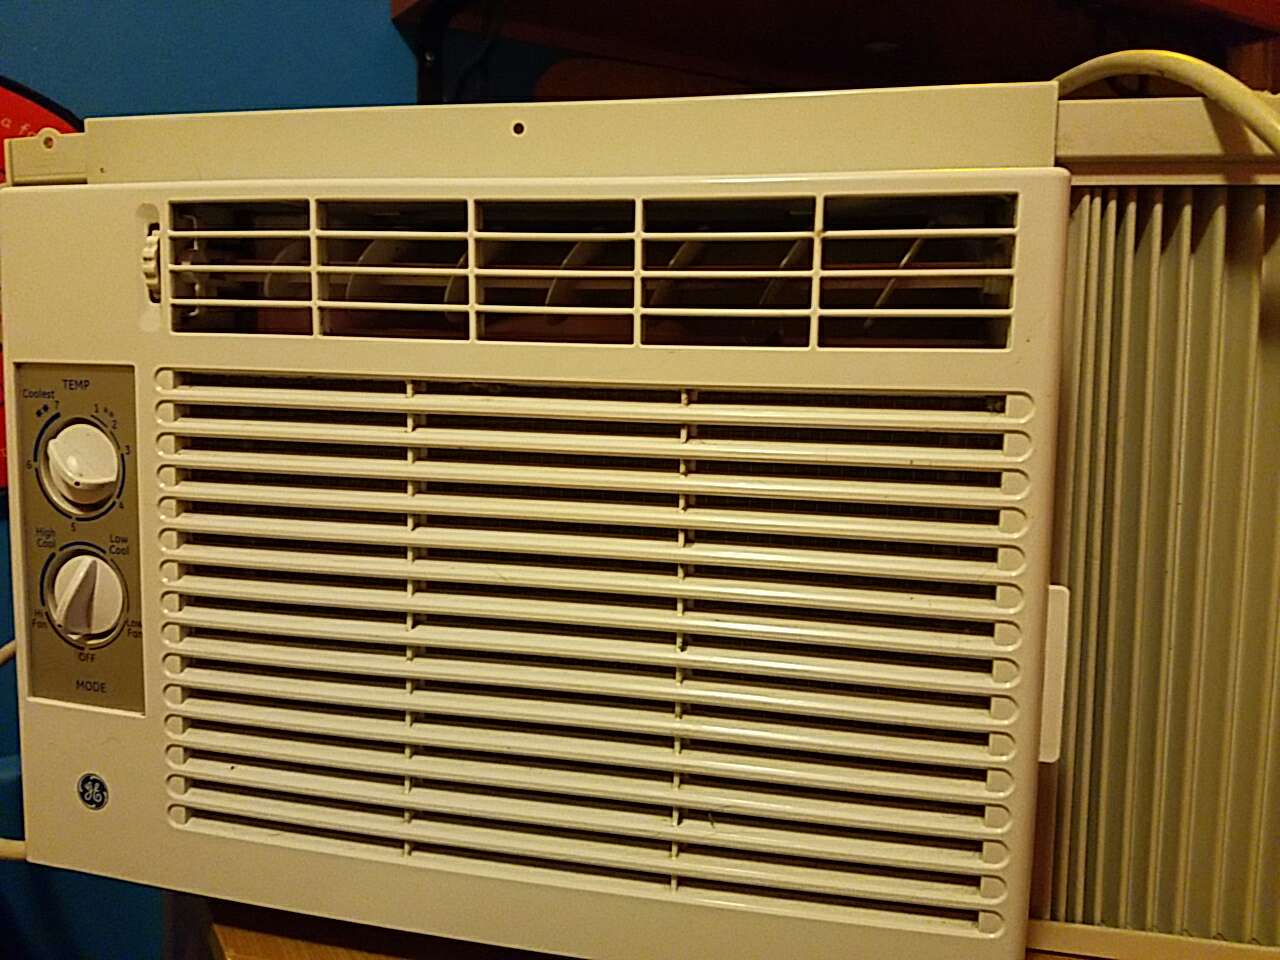 window room air conditioner all model info is in the 2nd picture works #B5180A